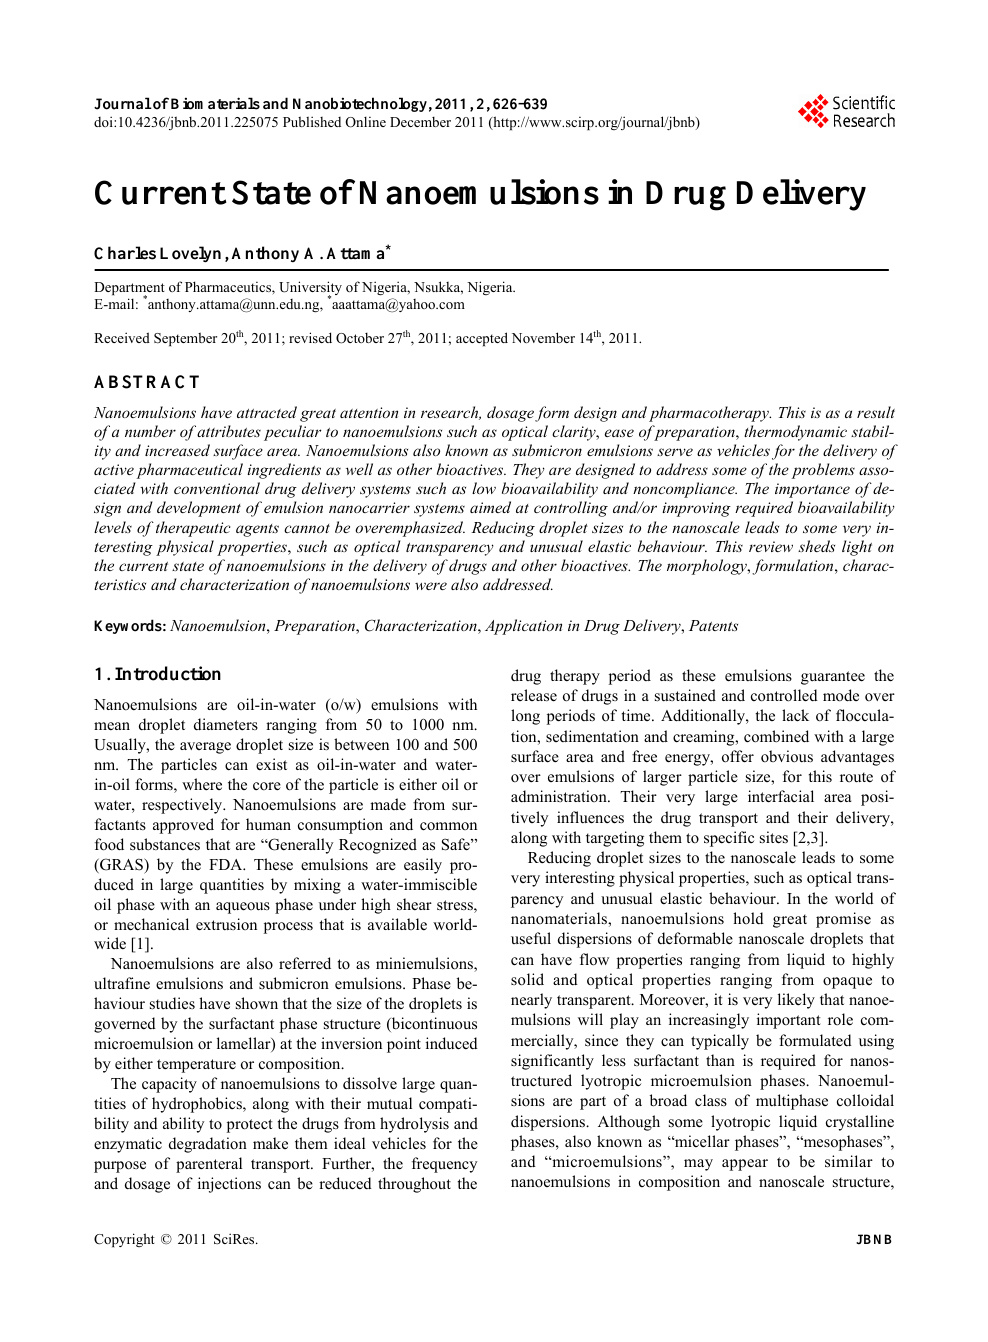 Current State of Nanoemulsions in Drug Delivery – topic of